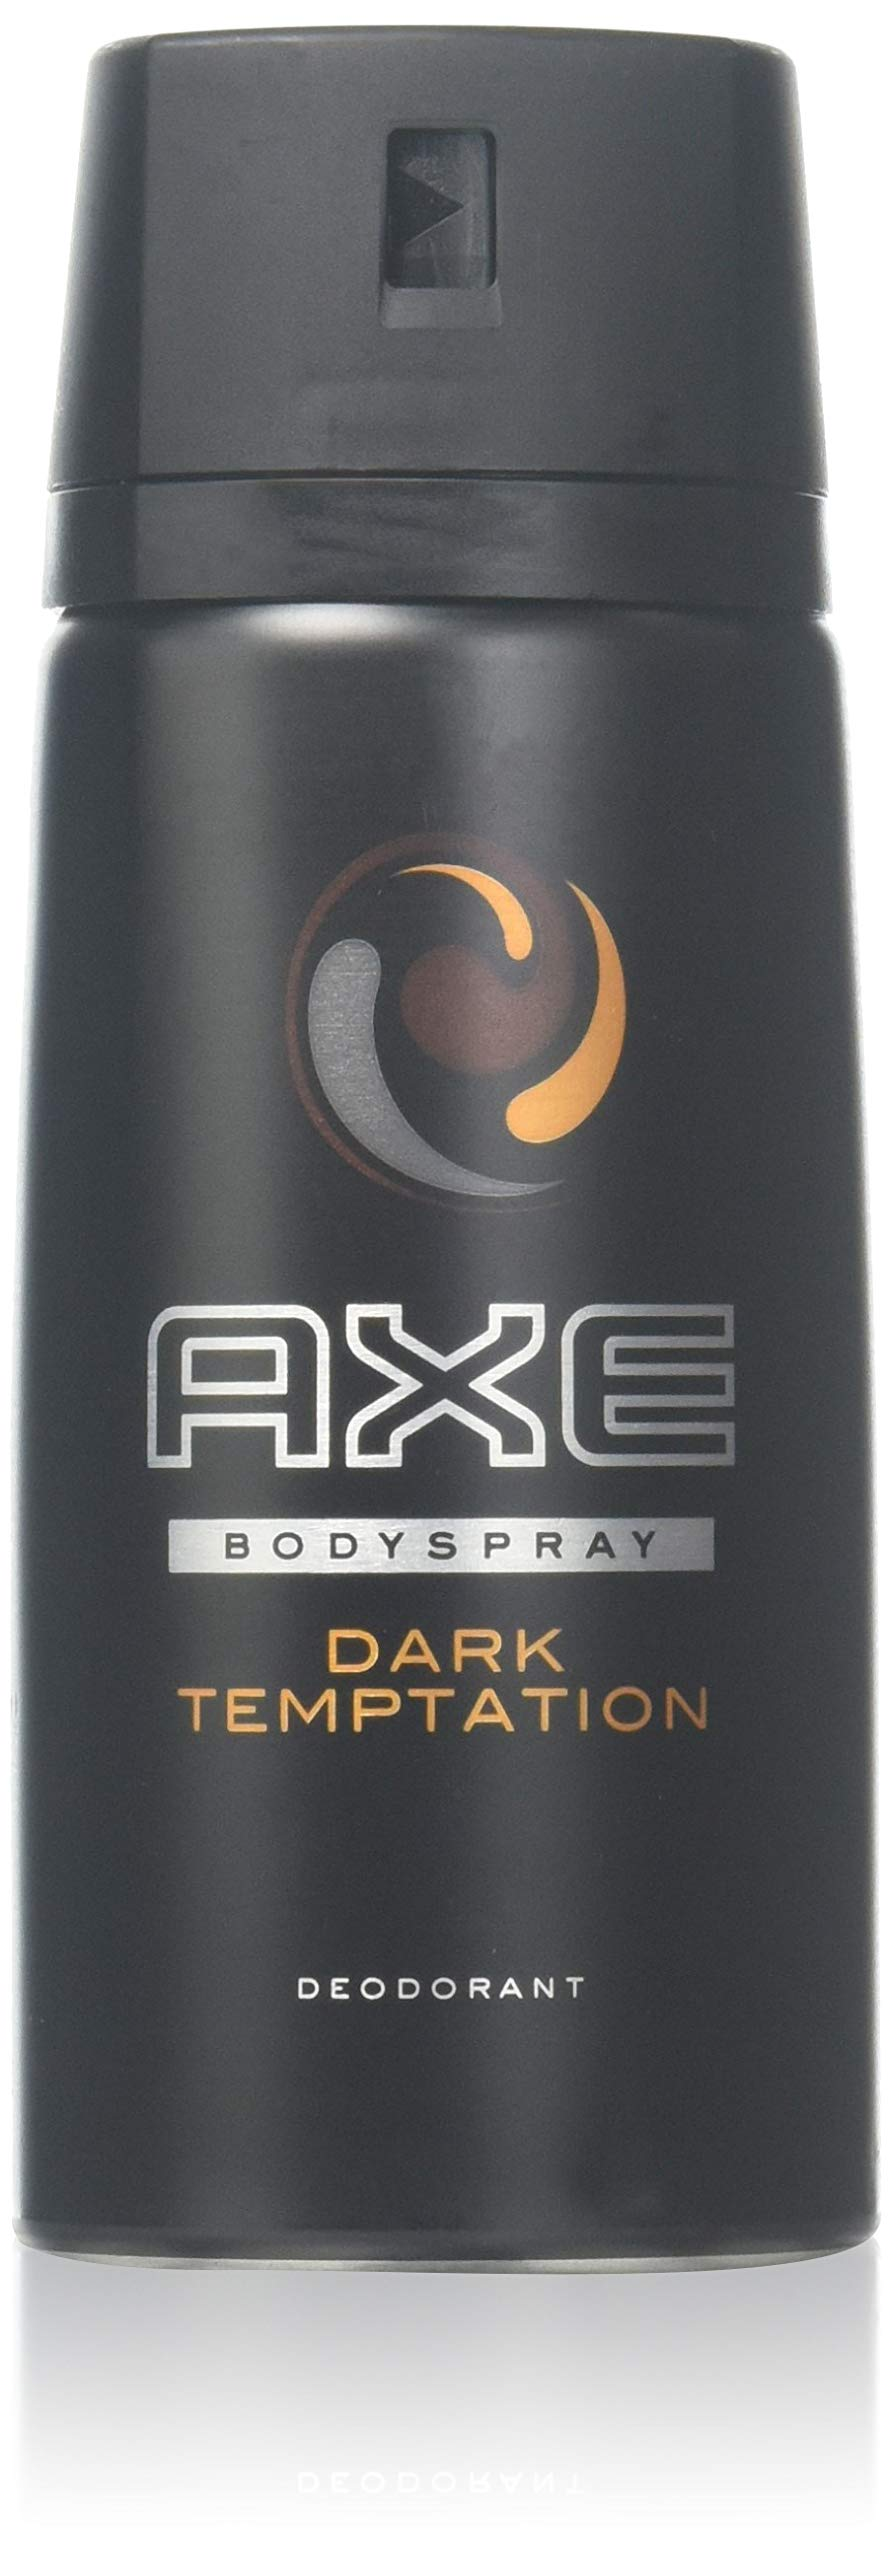 Best Rated in Men's Scented Body Sprays & Helpful Customer Reviews